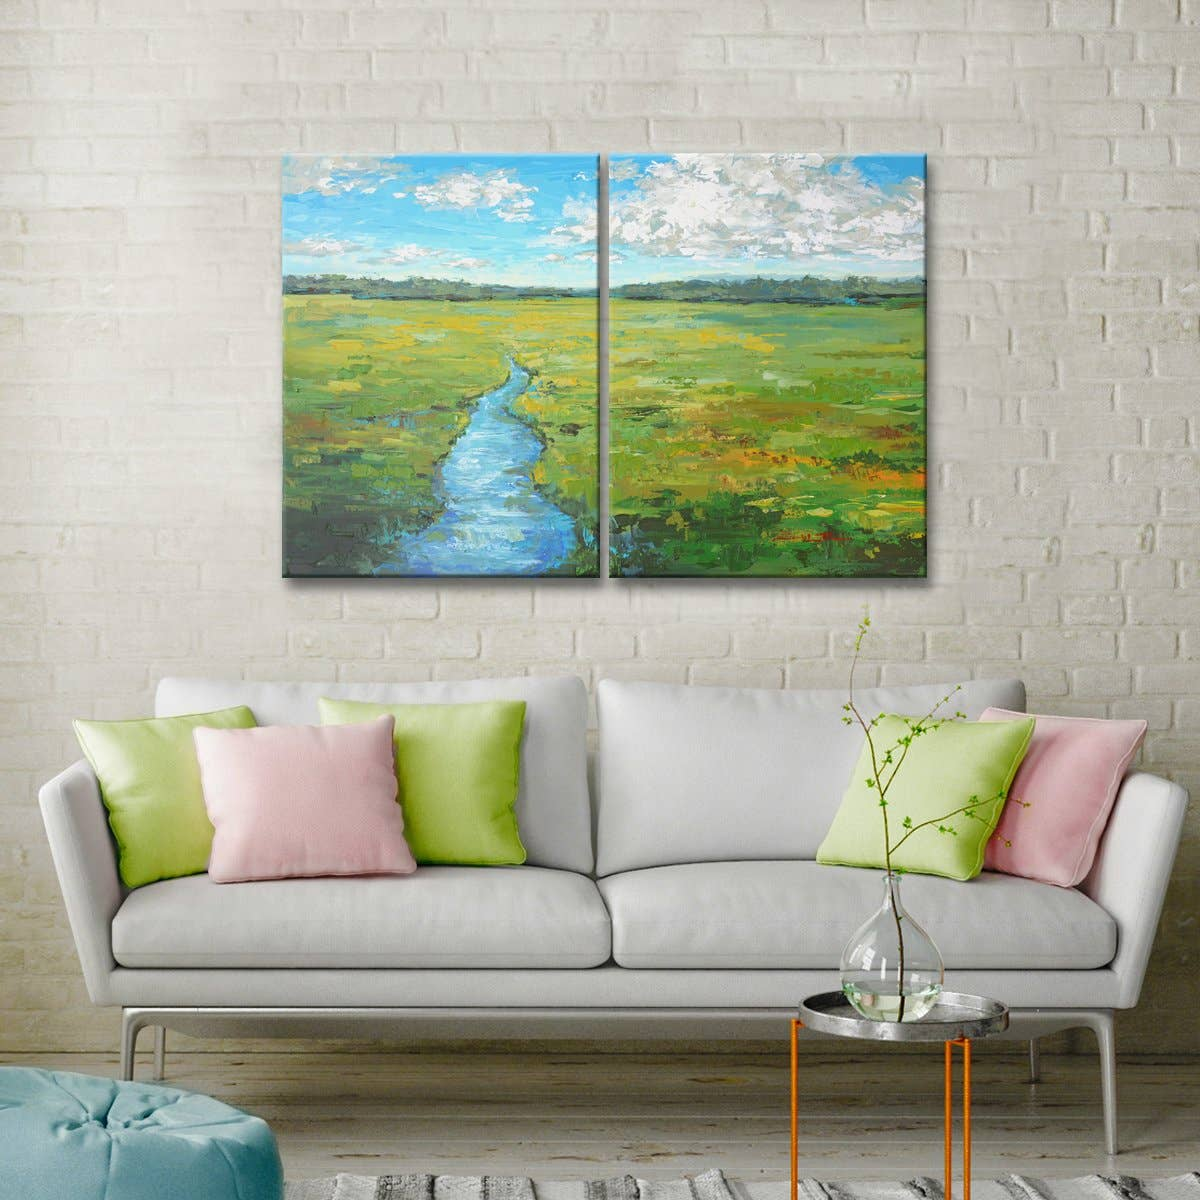 'Field Day' 2-Pc Wrapped Canvas Coastal